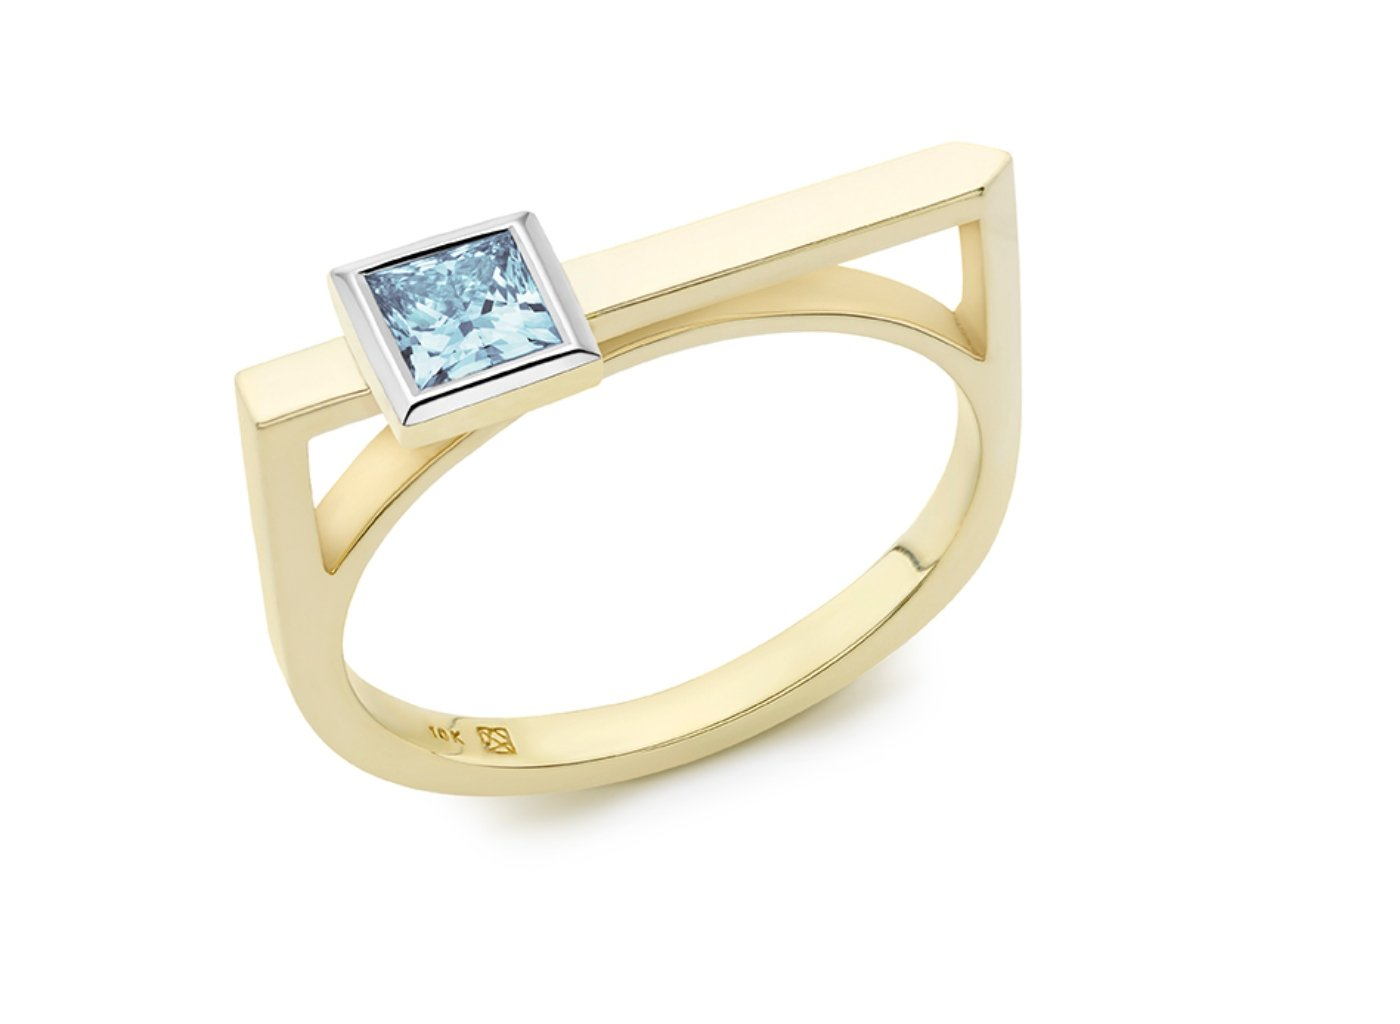 Side view of Princess linear 3/8 carat ring with blue diamond